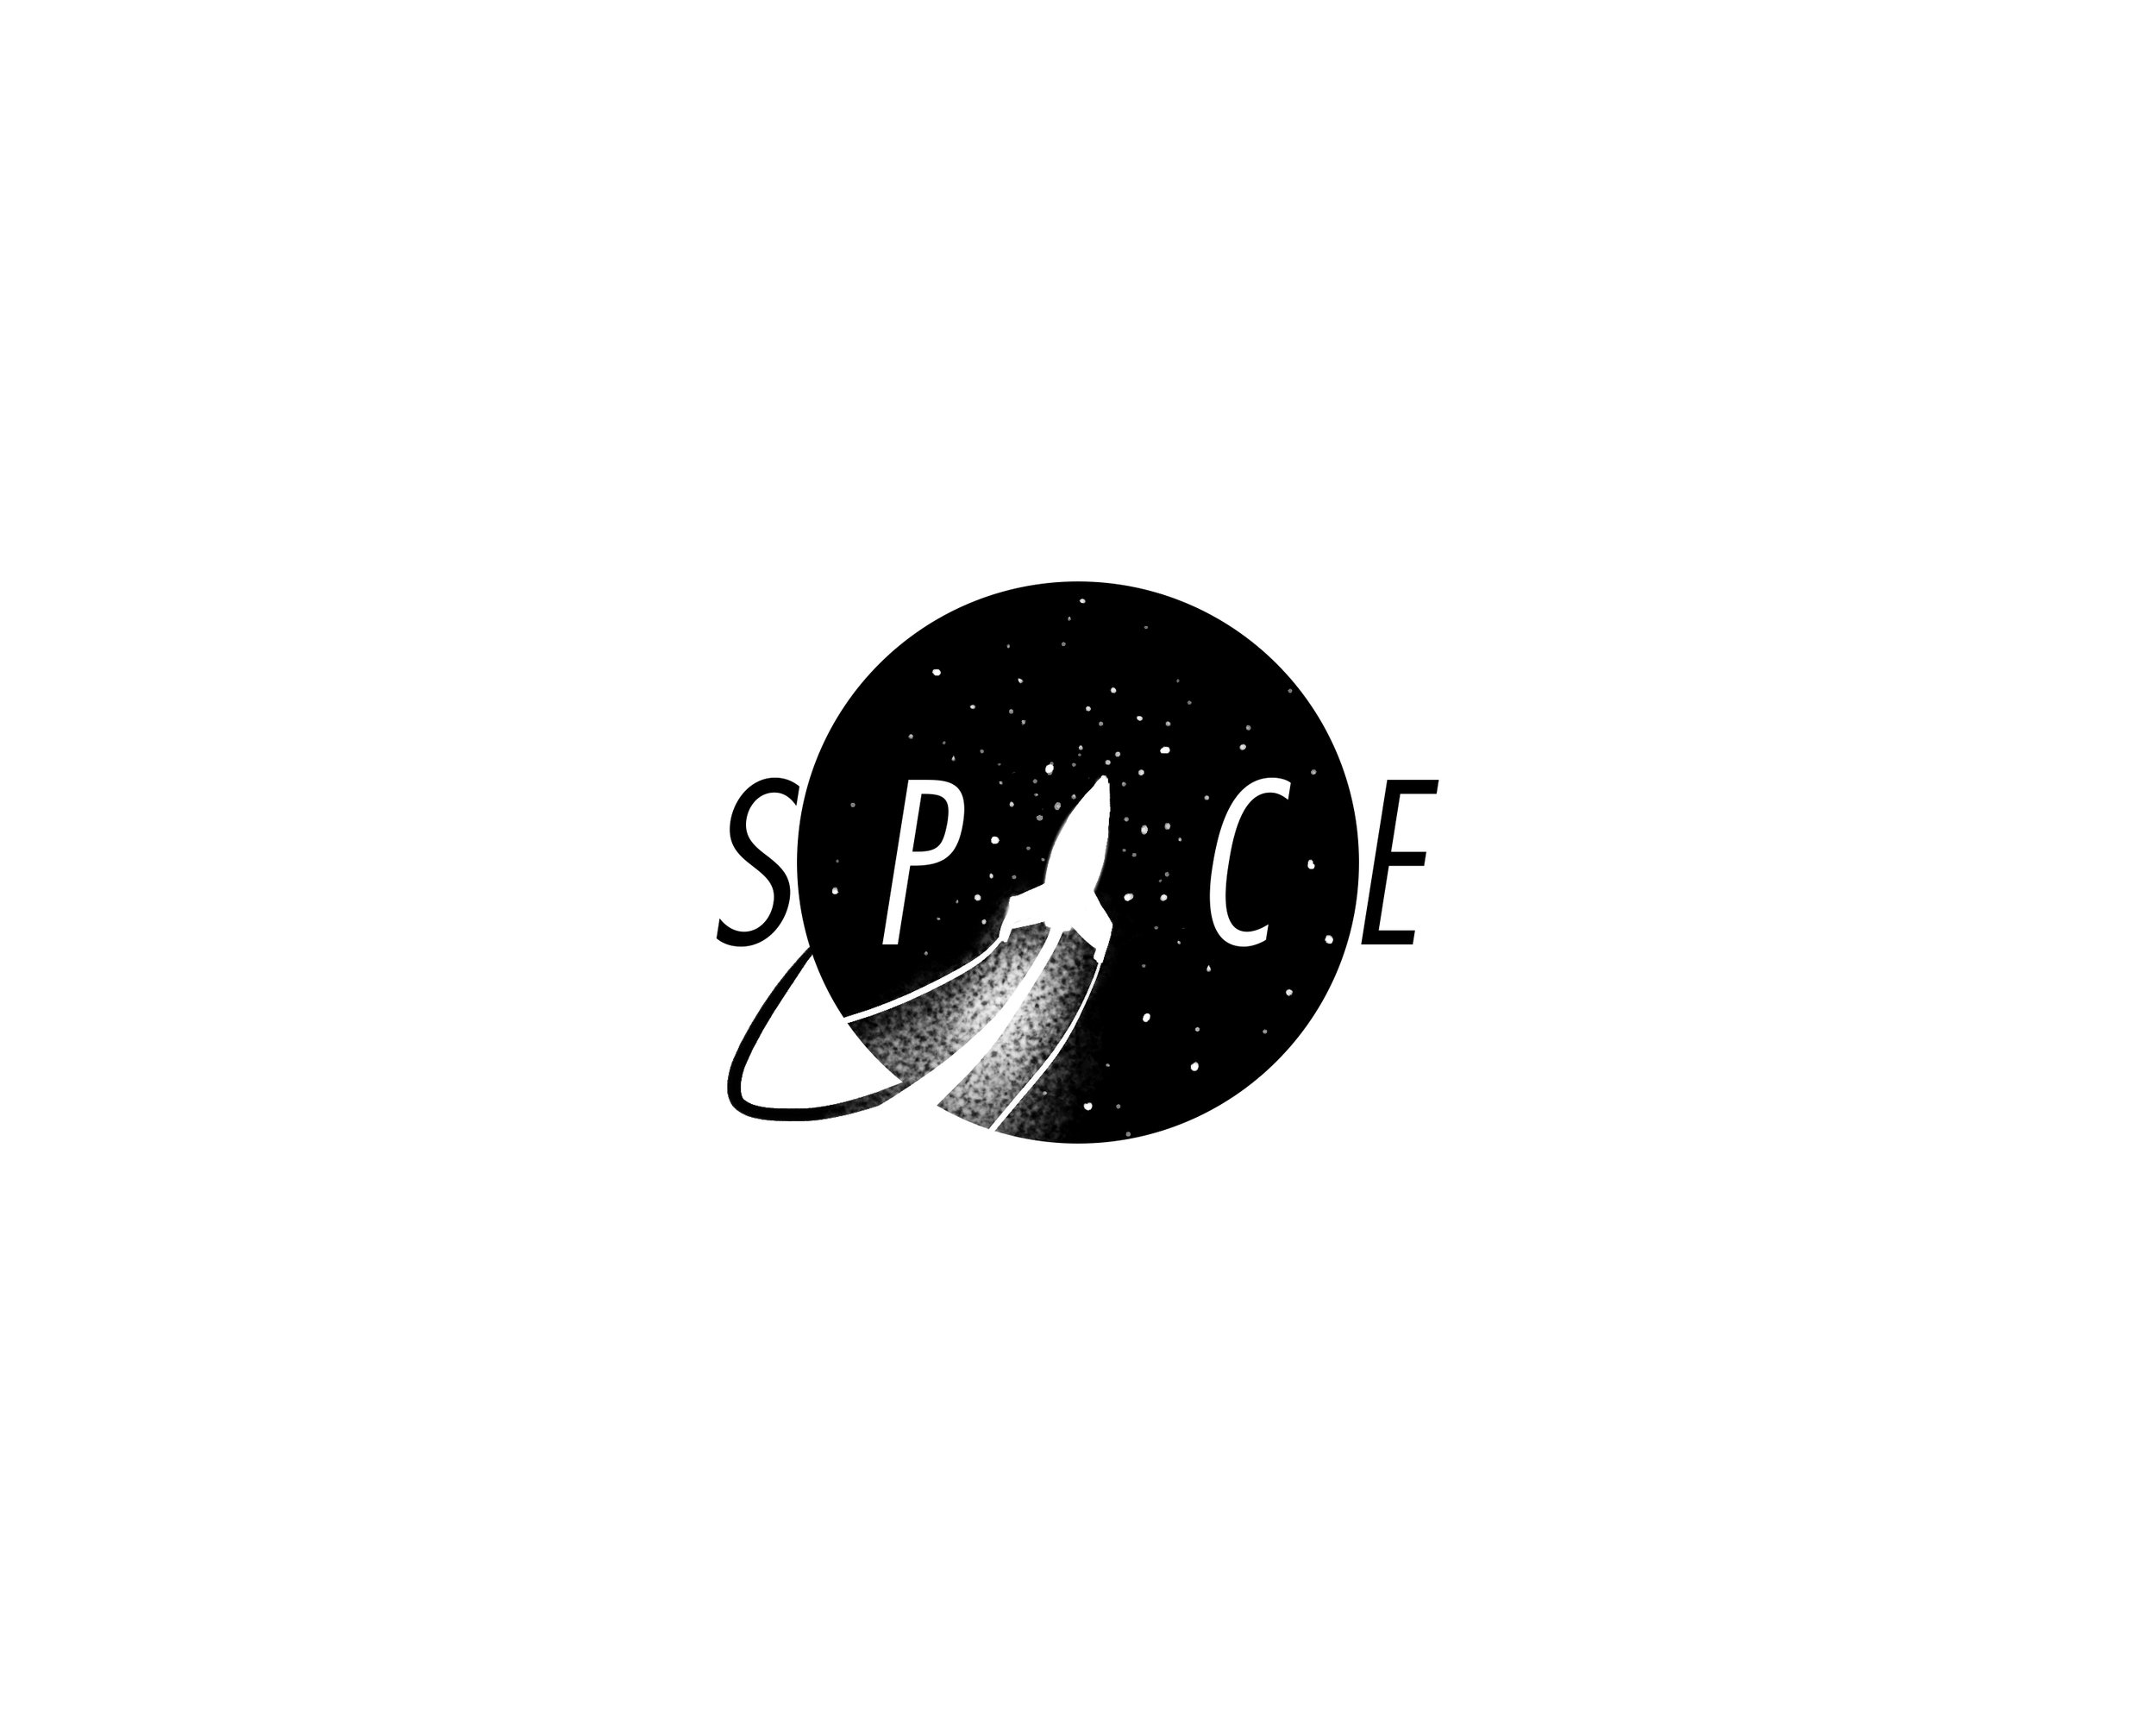 SPACE-sketch-1-bw.jpg